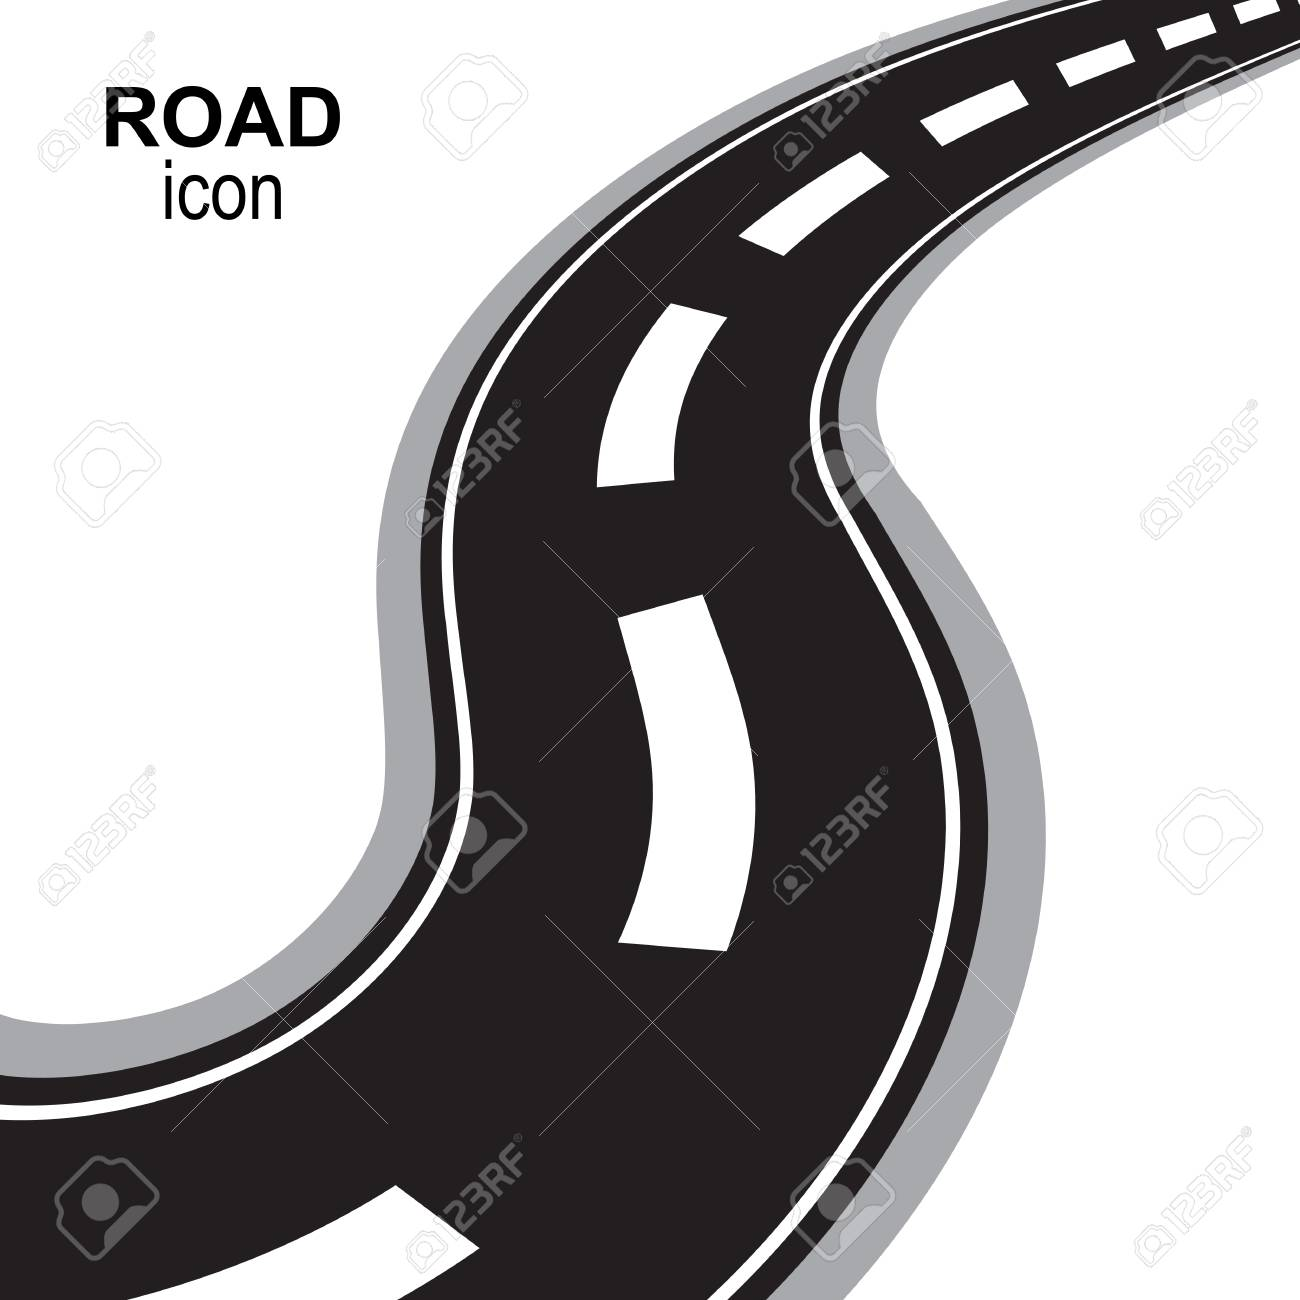 Road, way or highway perspective vector icon. Speedway silhouette, street pictogram or travel emblem isolated - 122120393